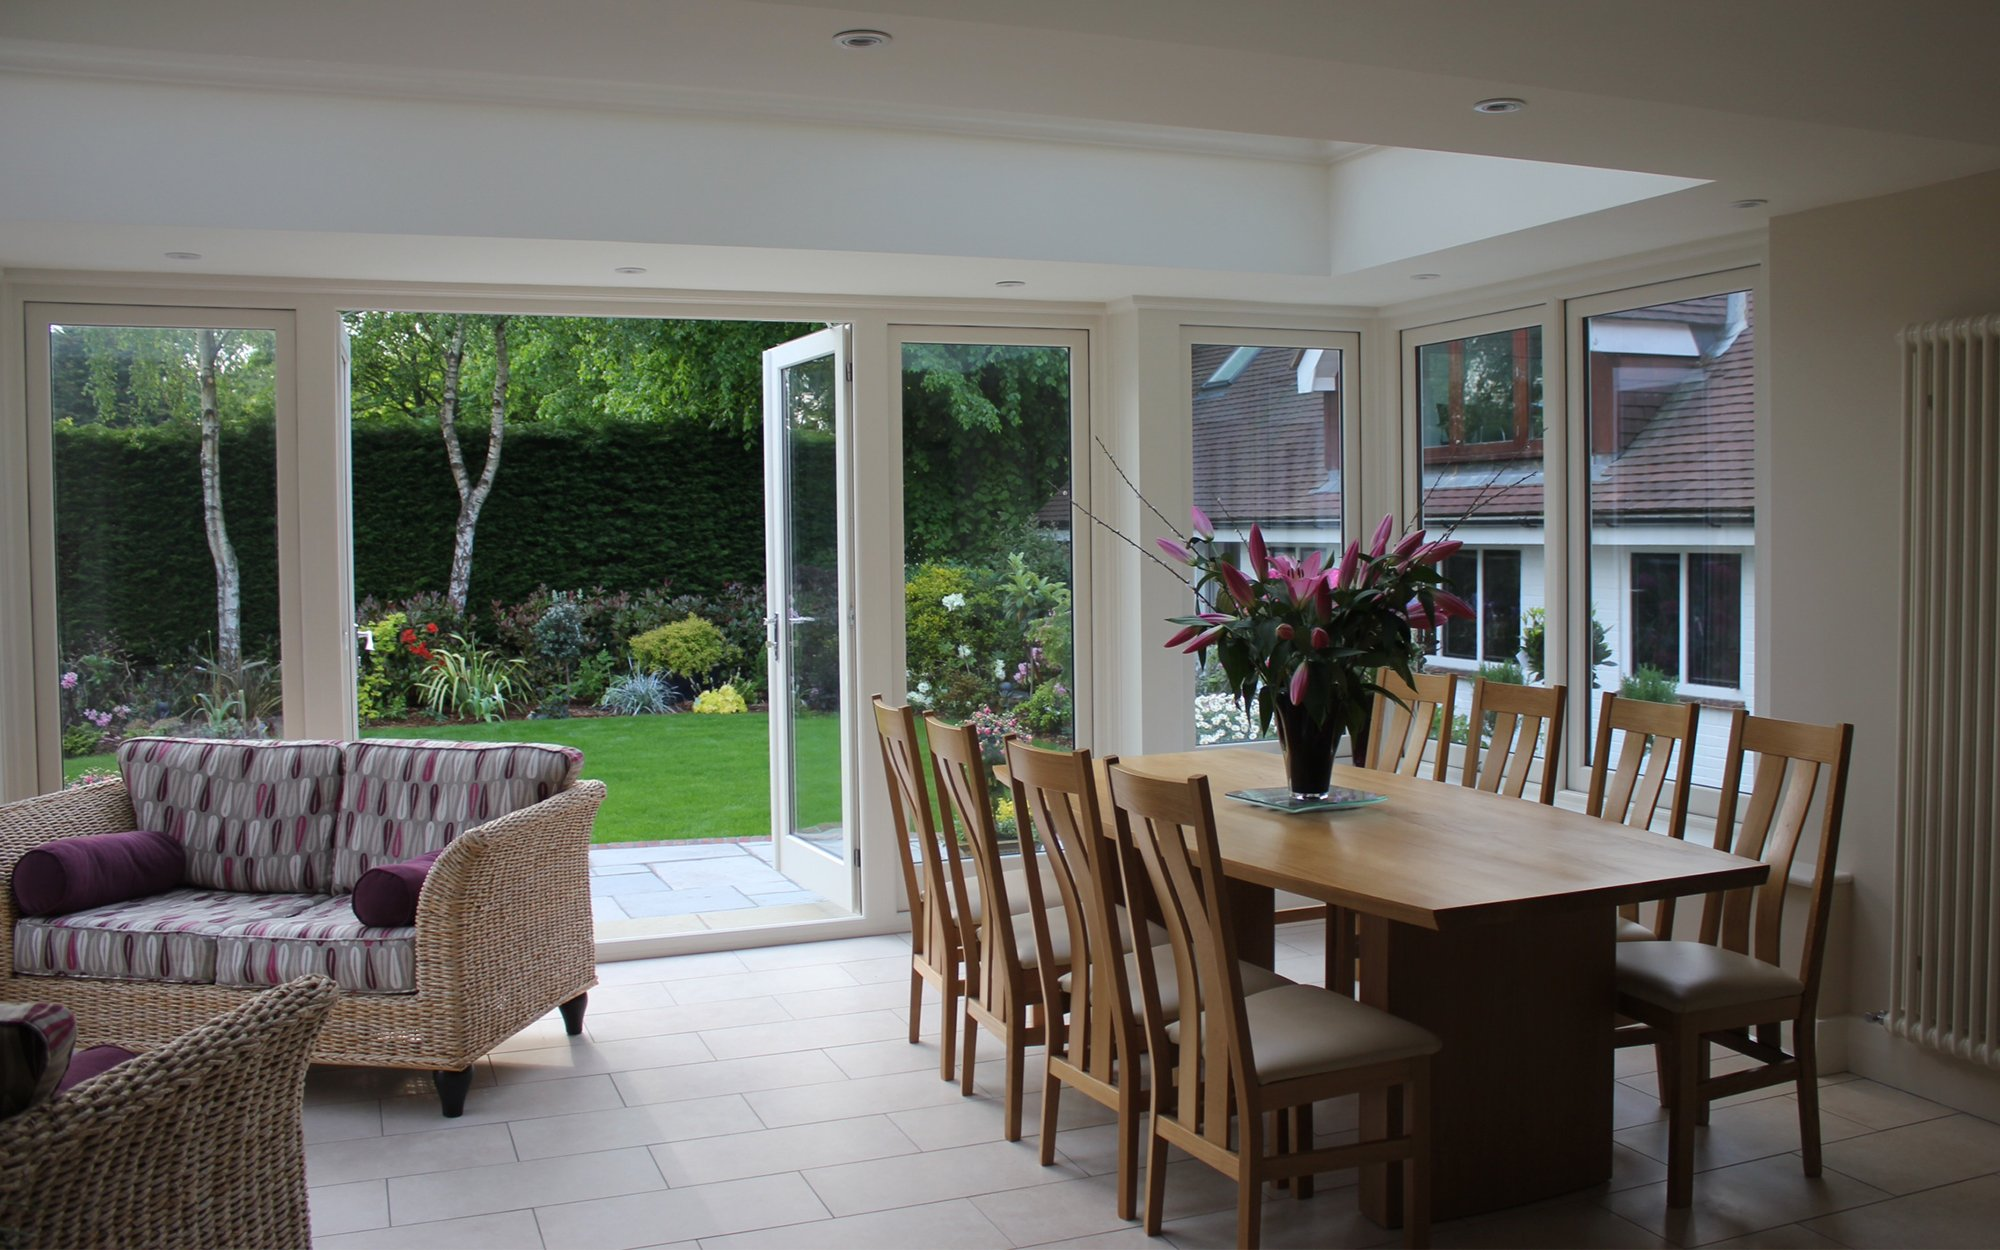 Bespoke Dining Set with Table and Chairs - Bourne's Fine Furniture Sussex